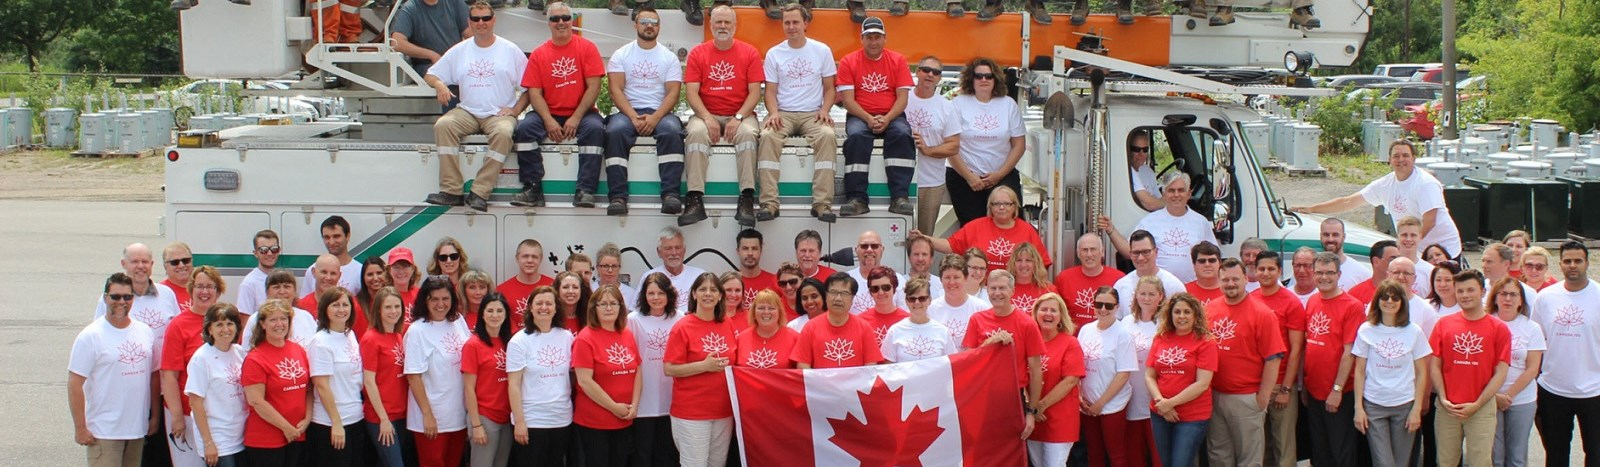 Energy+ employees gathered for Canada Day